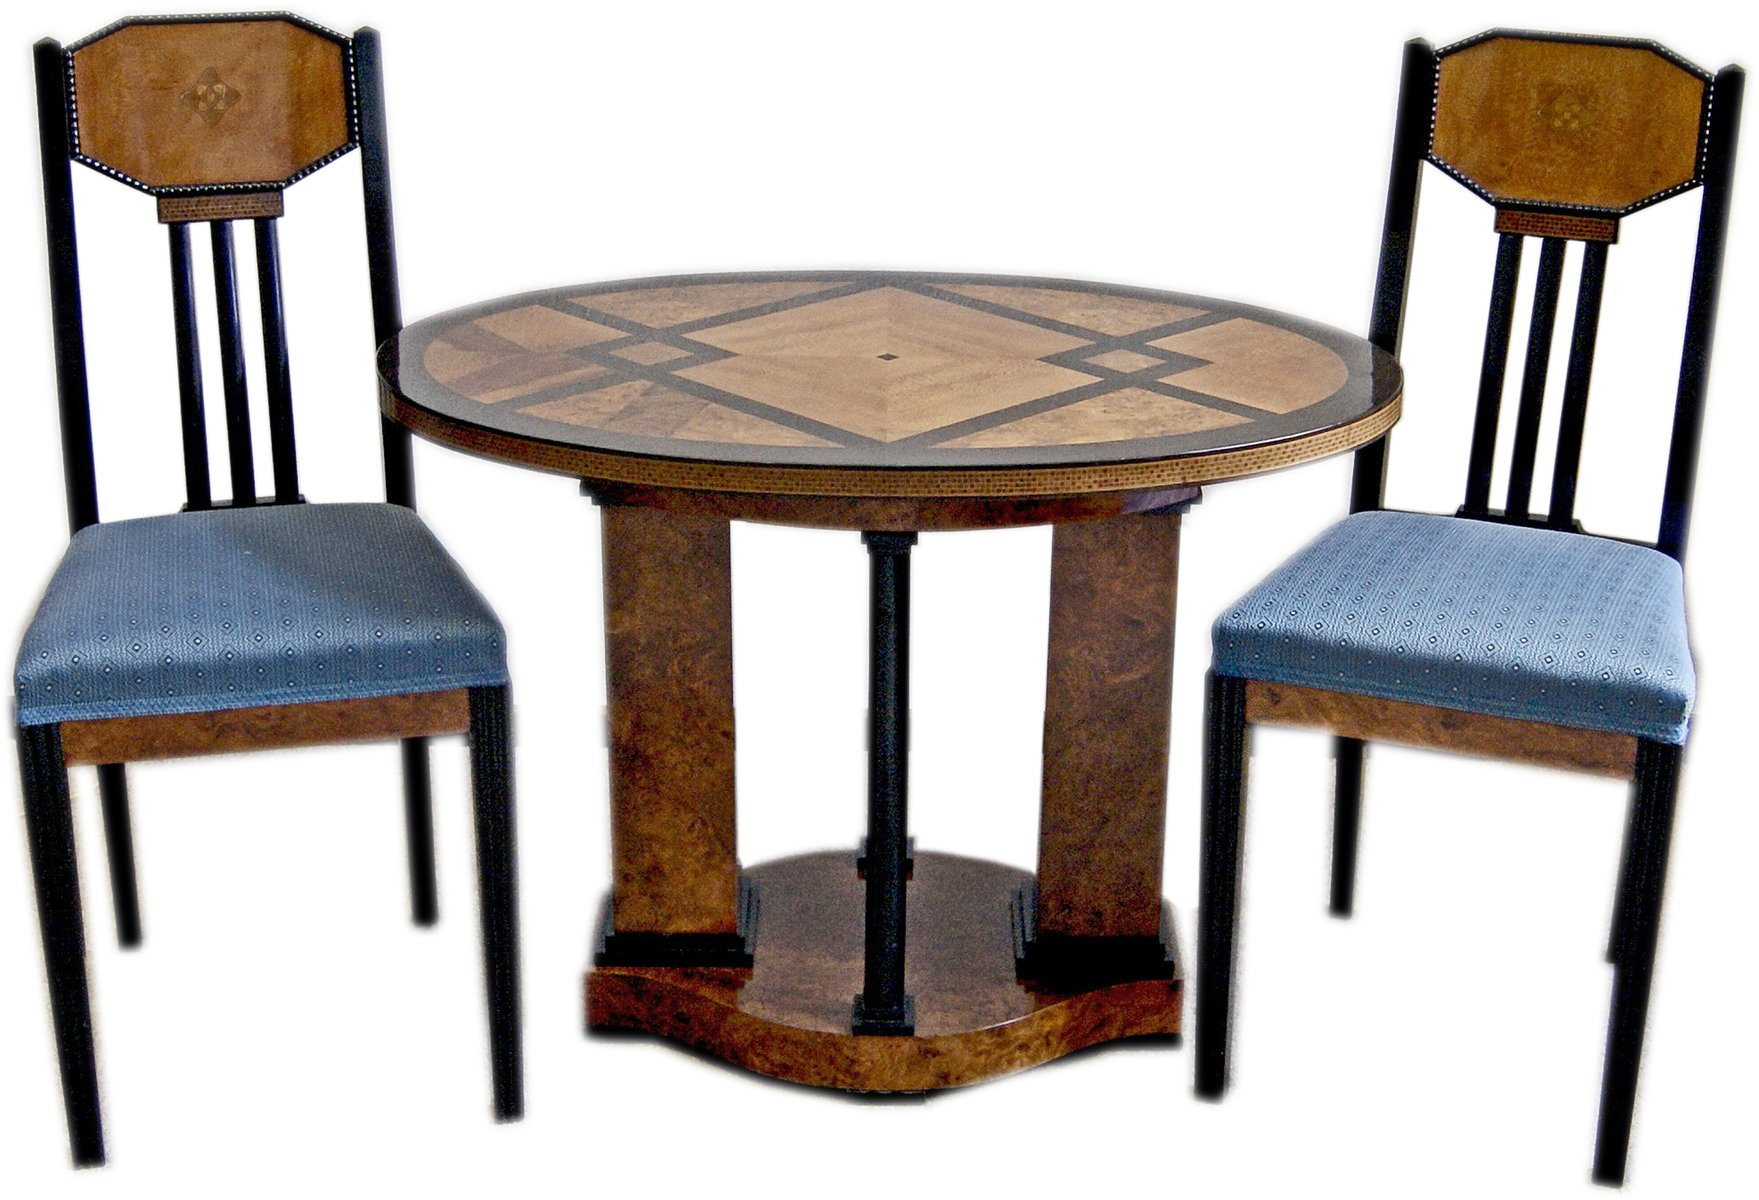 Antique German Table & Chairs by Joseph Maria Olbrich for sale at